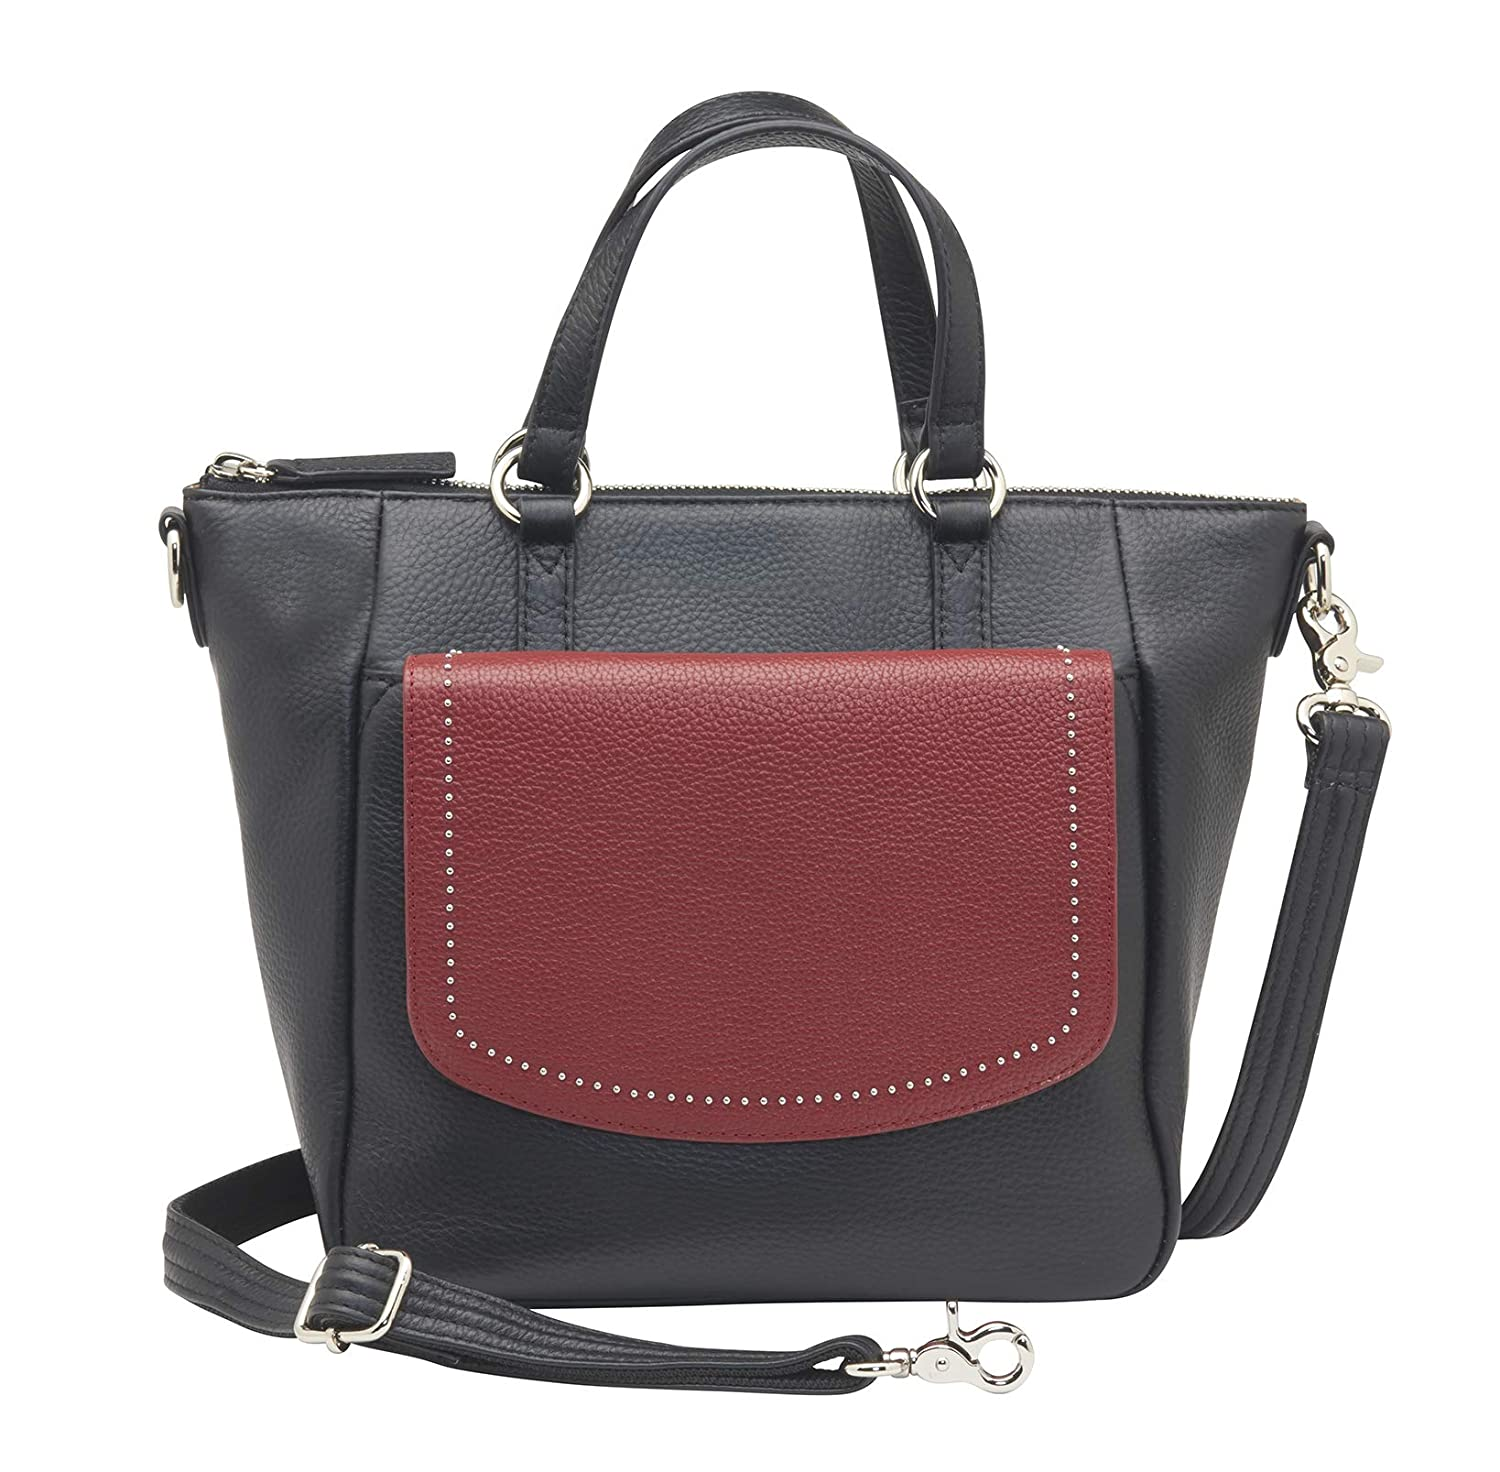 42e78fcb4287 Concealed Carry Purse - 4-in-1 Leather Crossbody Bag by GTM ...